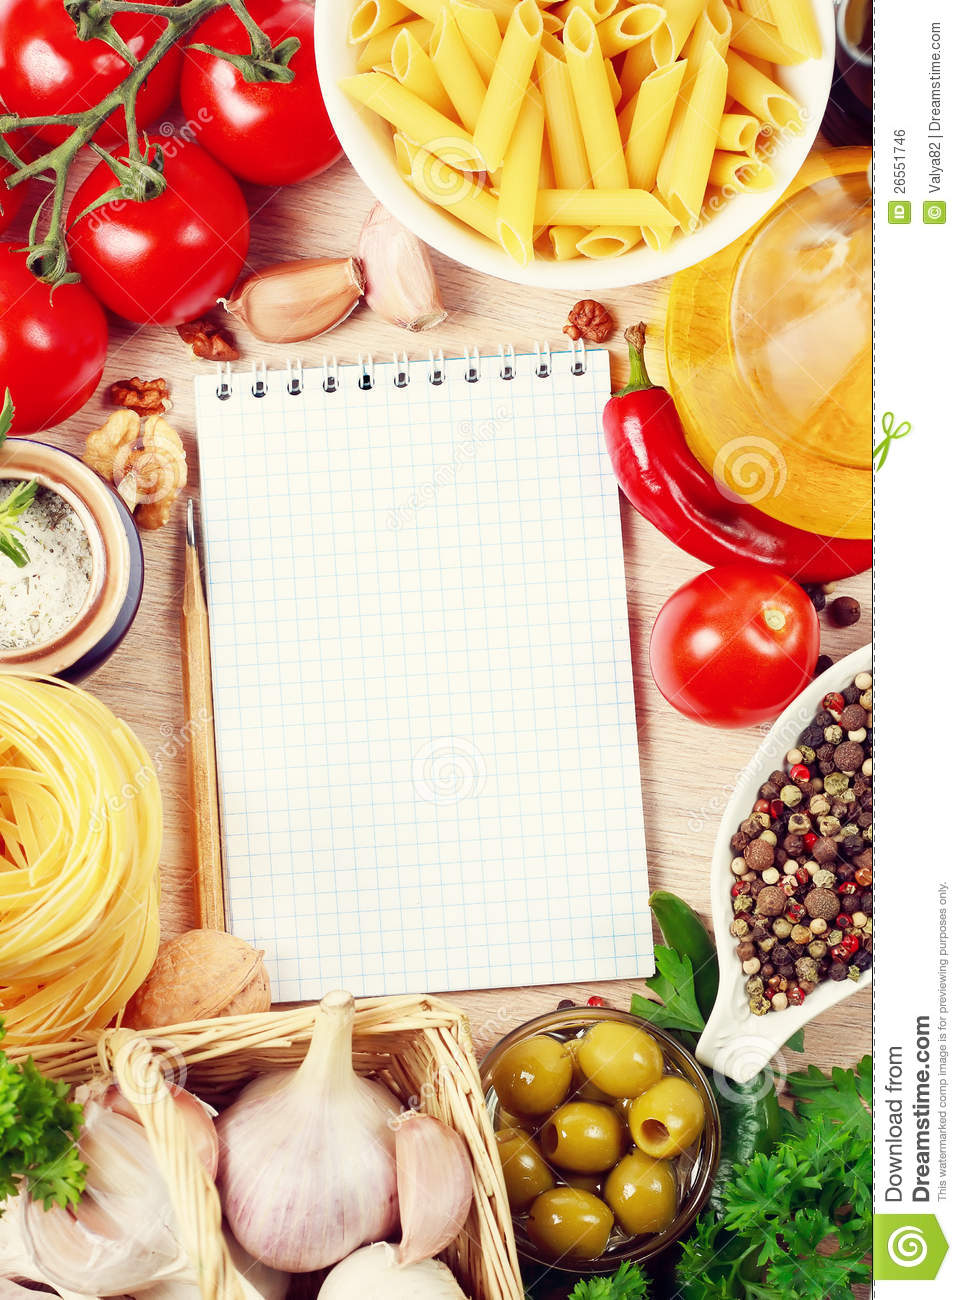 Cookbook Covers Free Templates : Blank recipe book stock photo image of assorted handmade